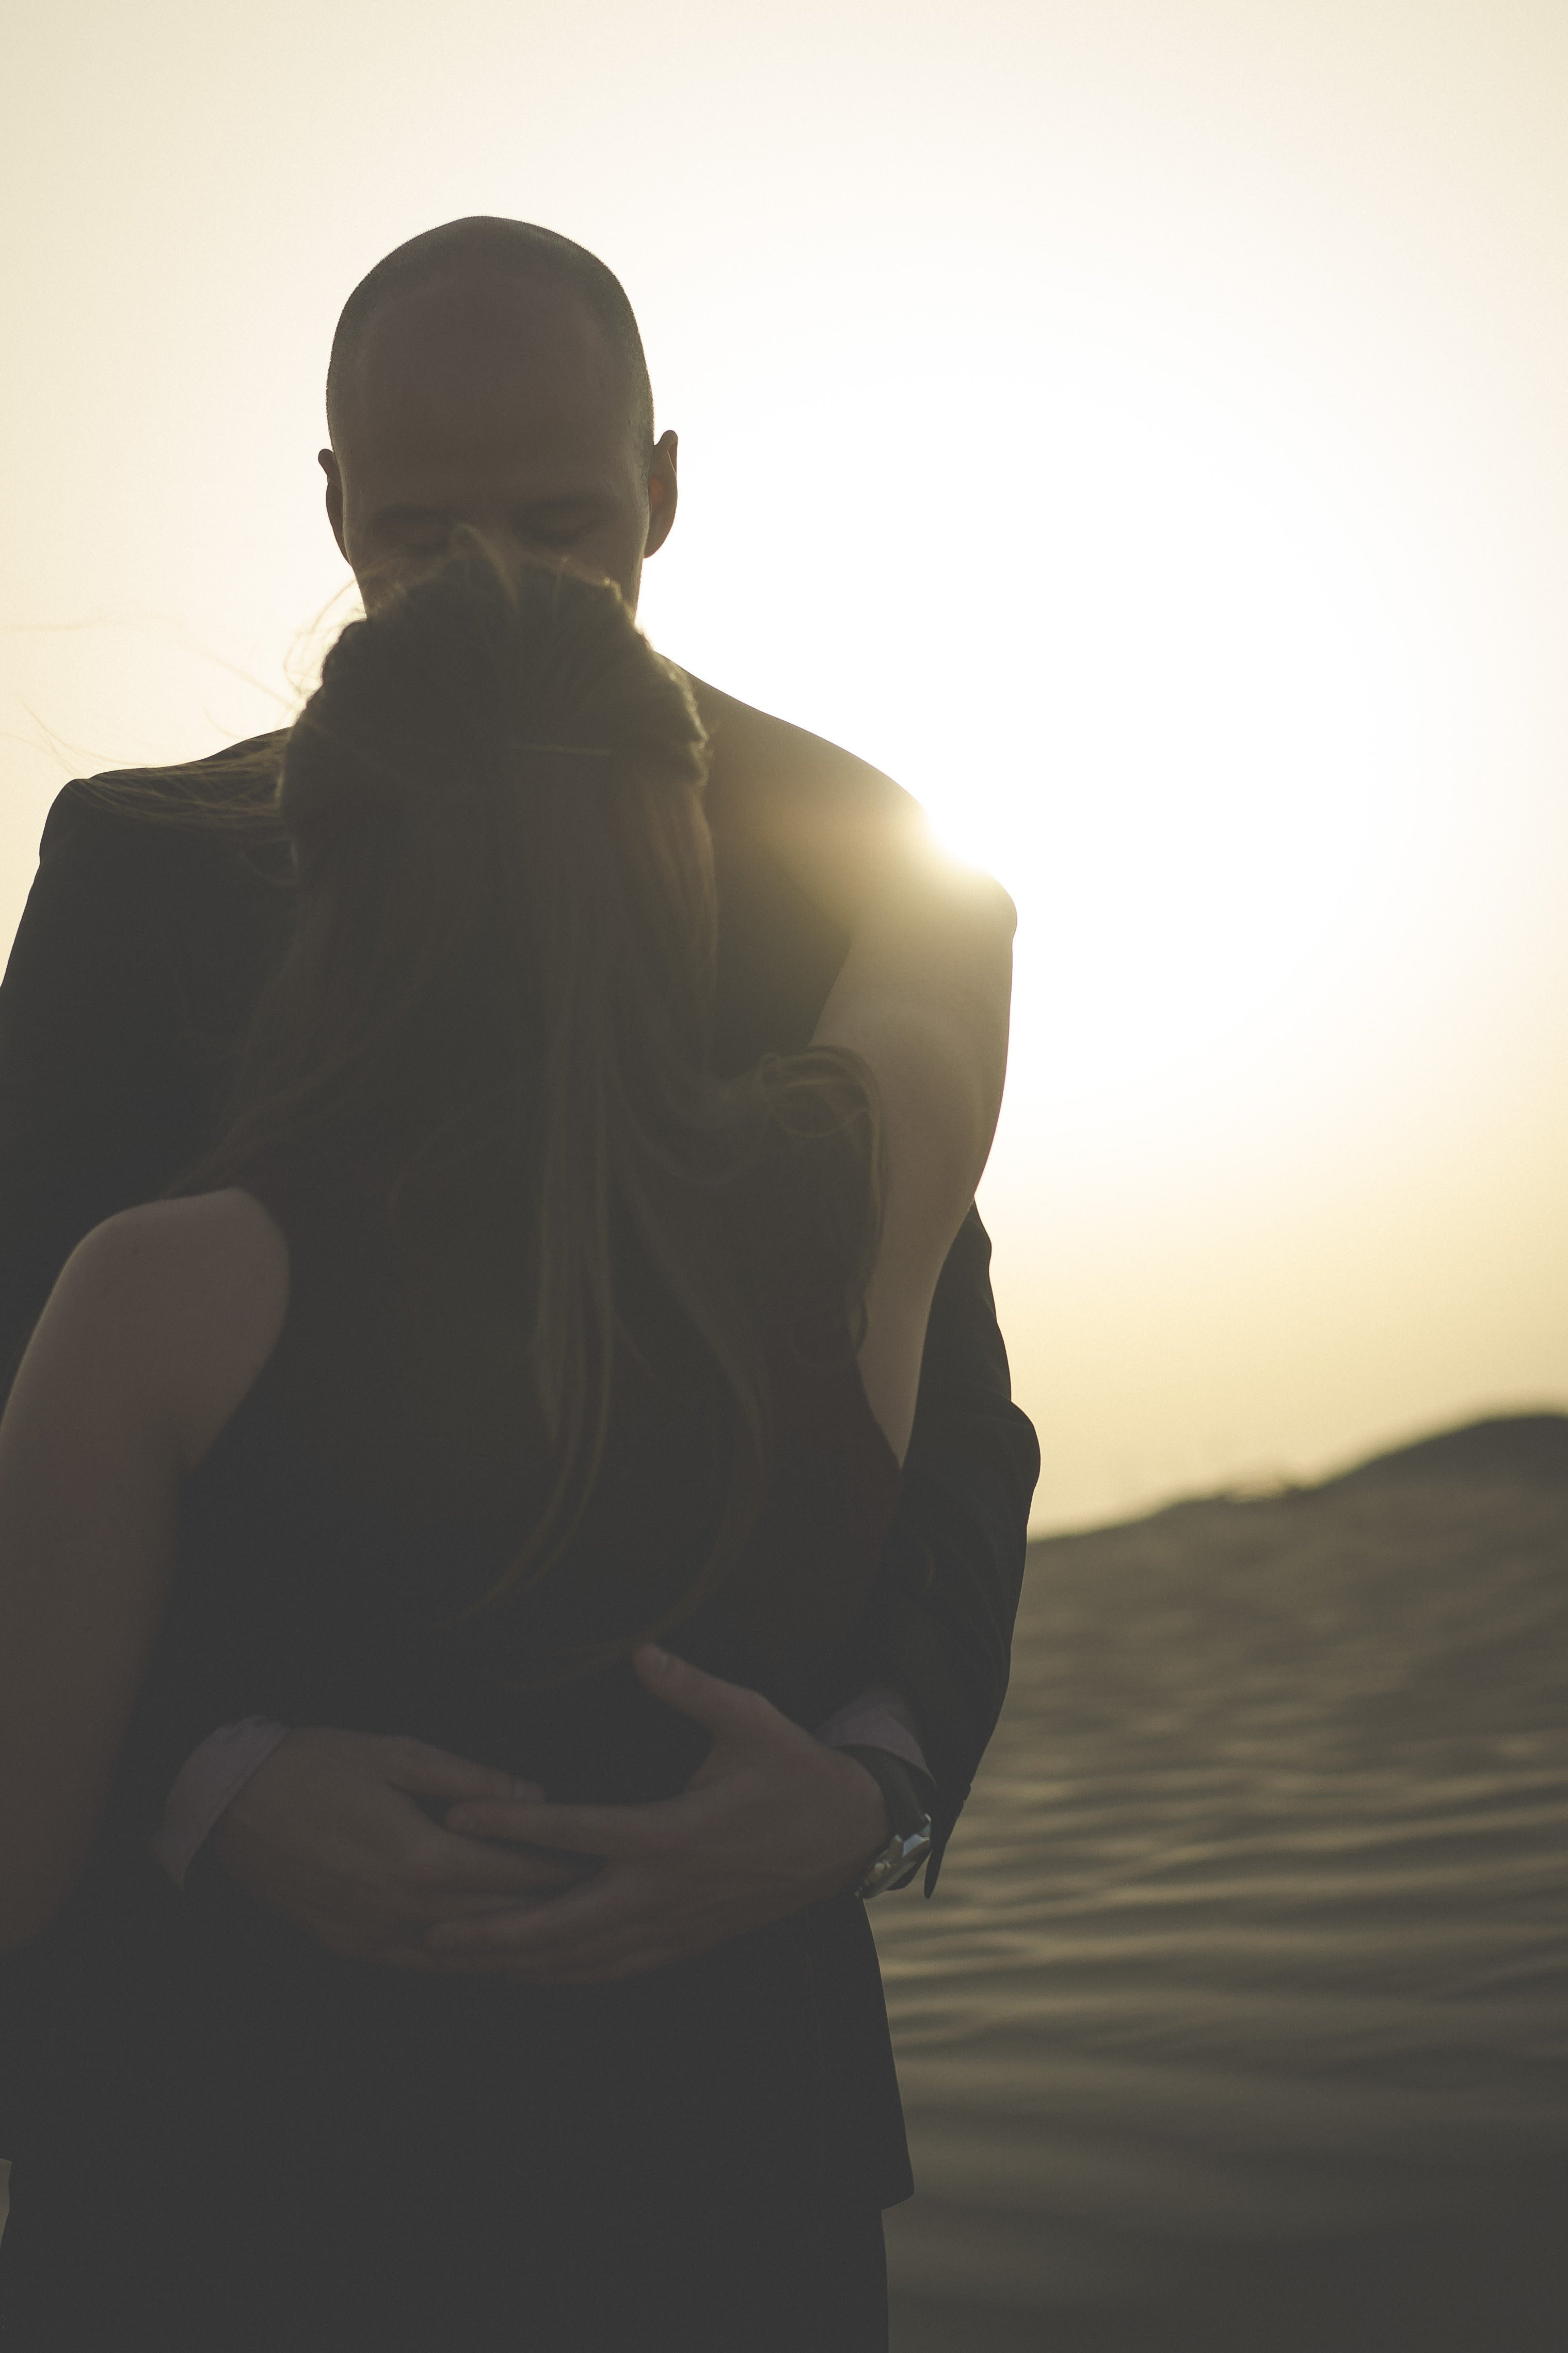 Abu Dhabi engagement photo in the desert